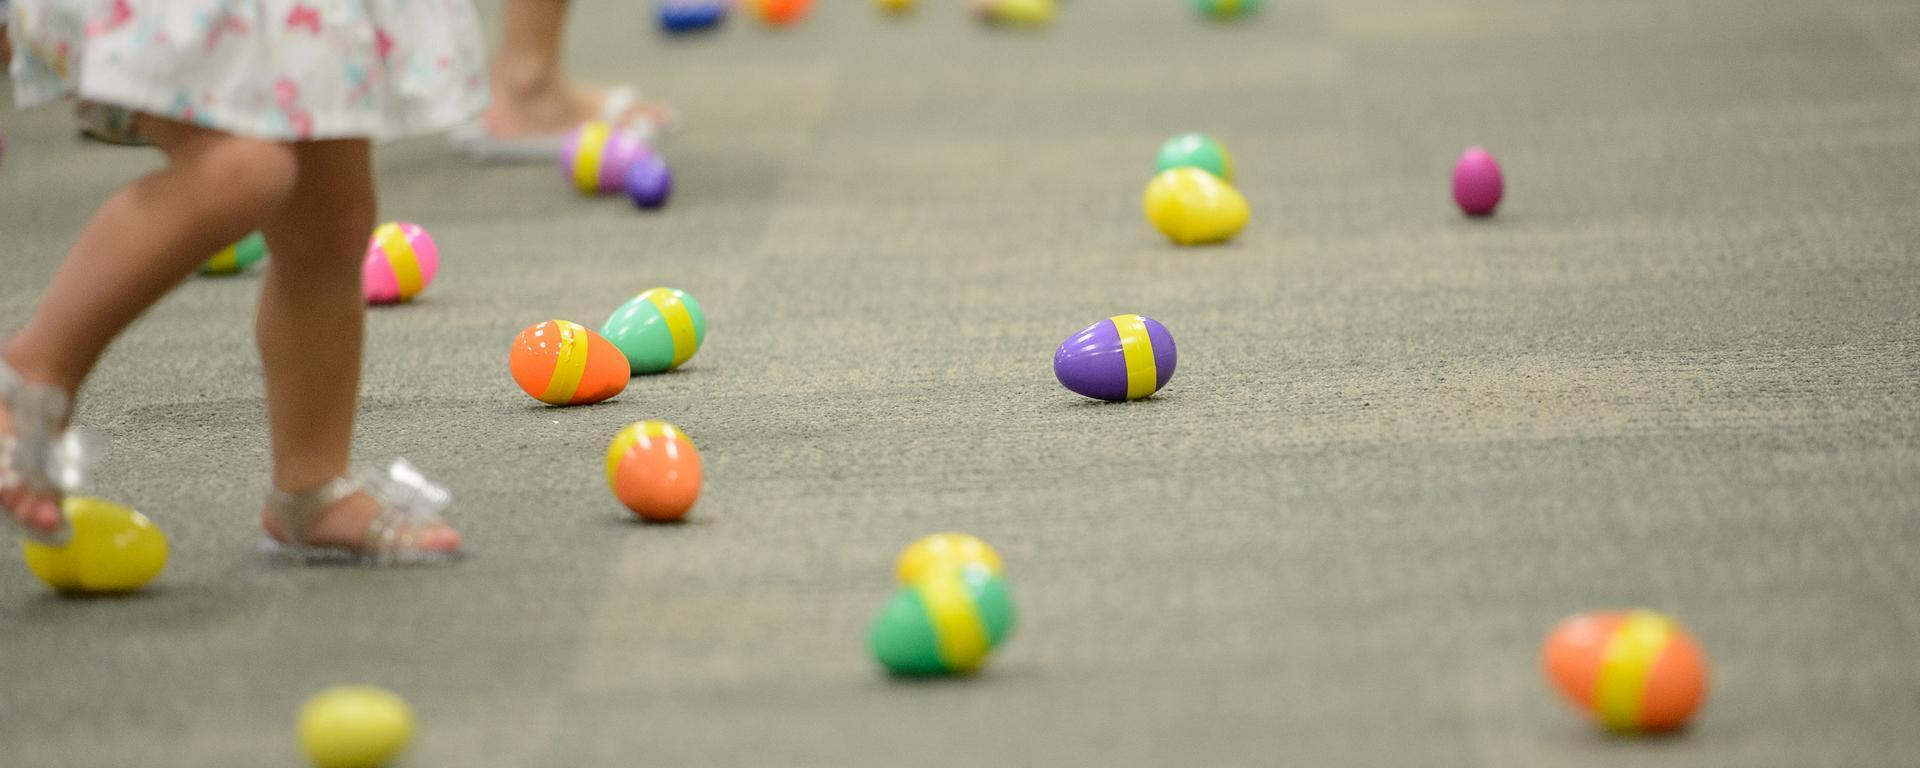 plastic eggs on the floor and a childs legs